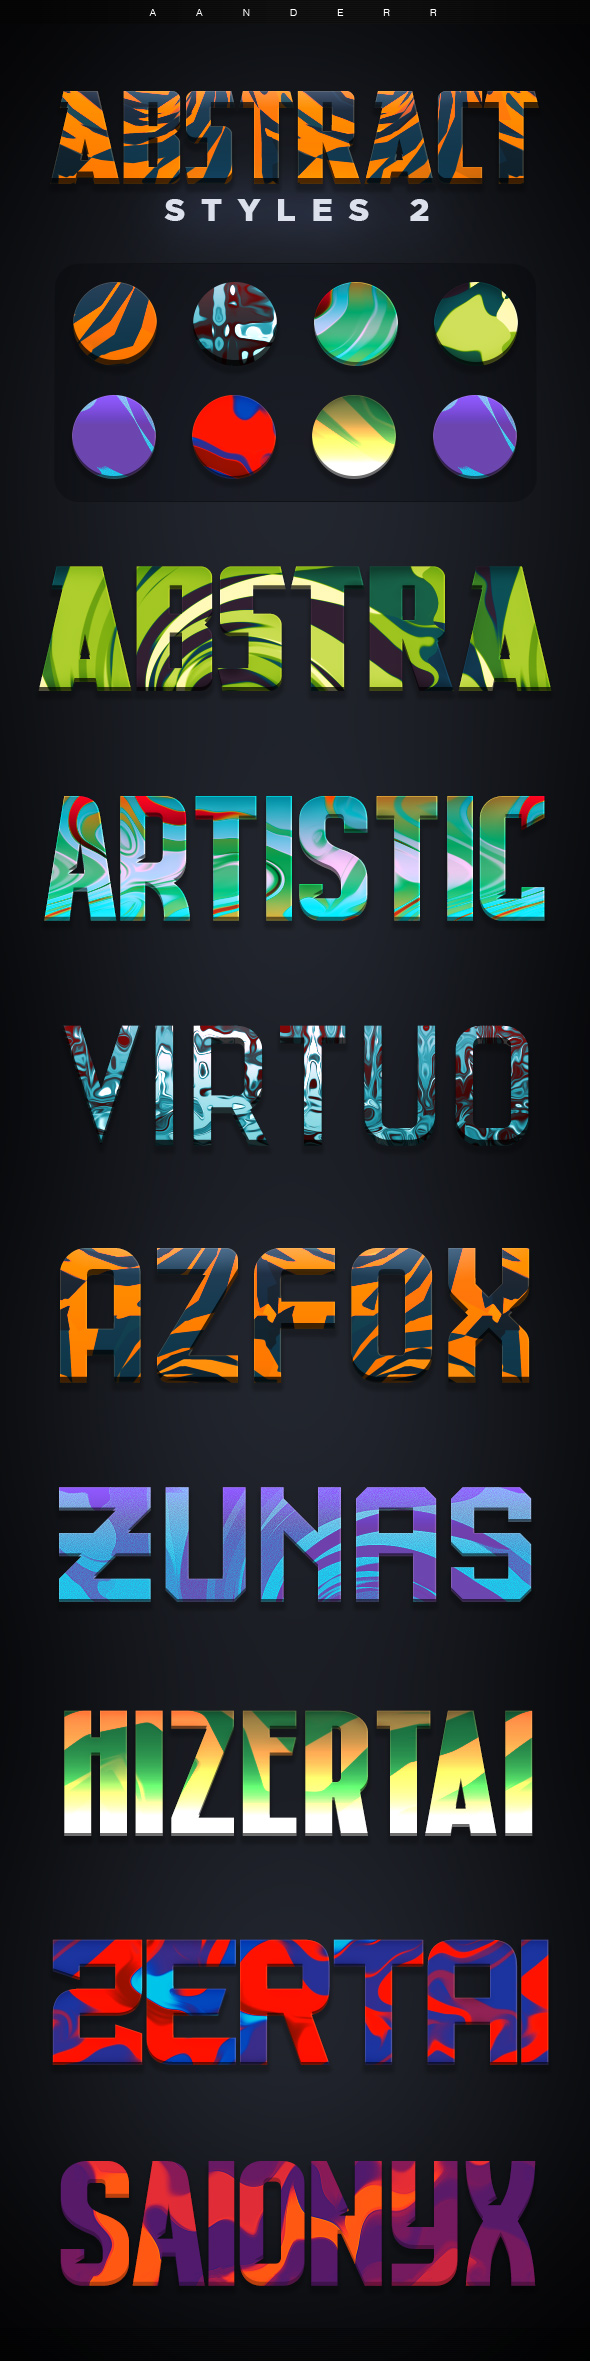 Abstract Photoshop Styles 2 - Text Effects Styles